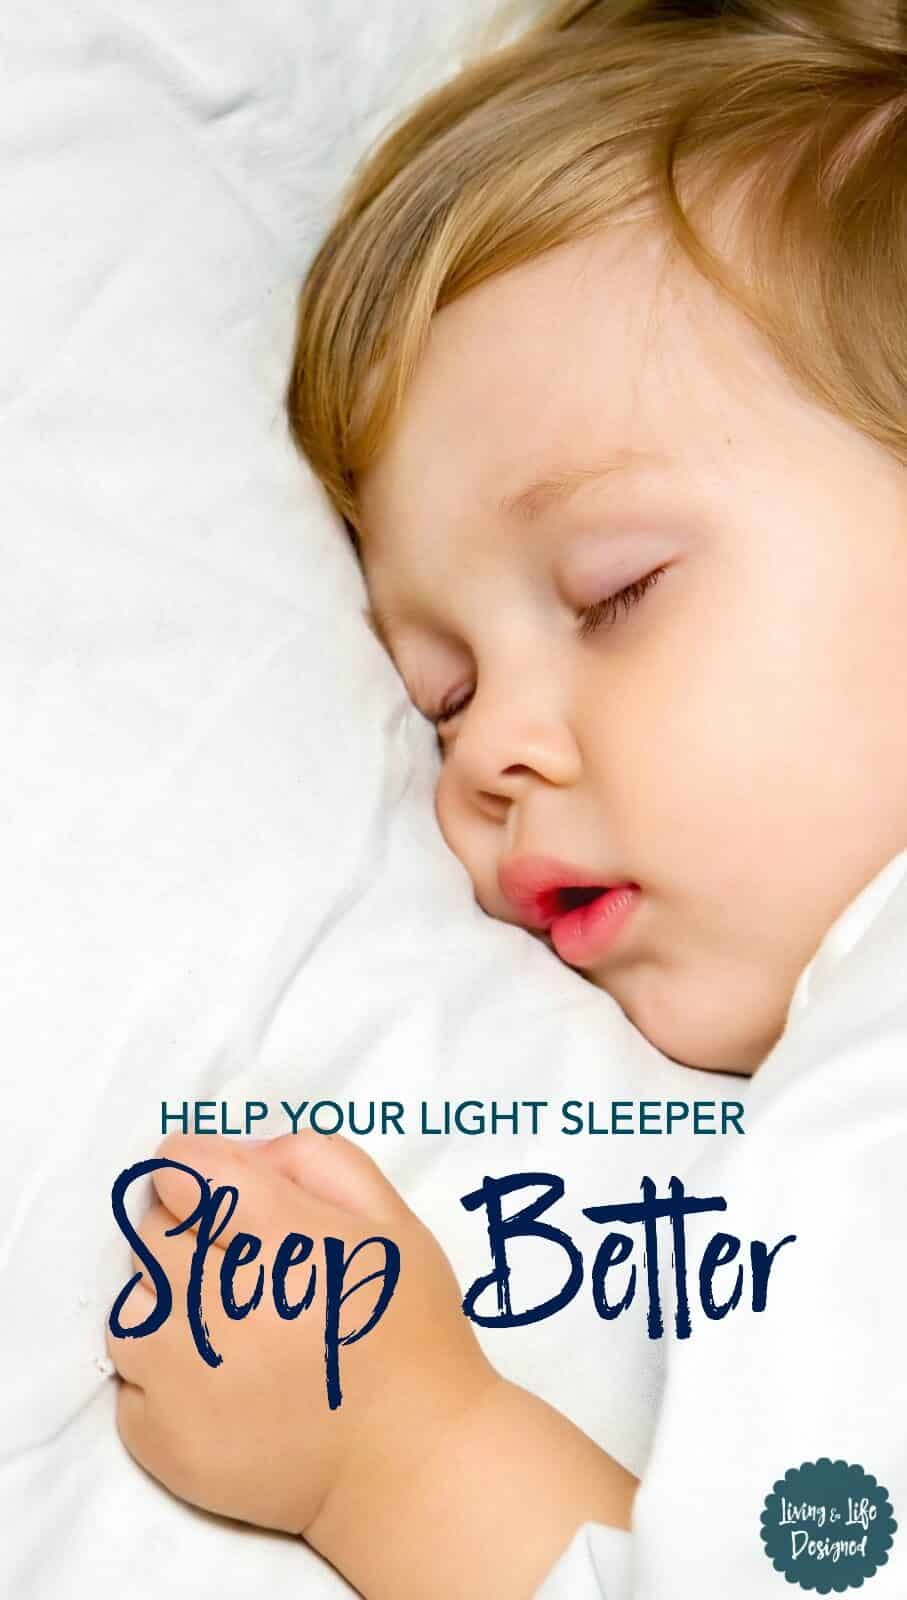 7 Ways to help your light sleeper sleep better and stay asleep longer. Create a peaceful bedtime routine to help your light sleeper sleep better.